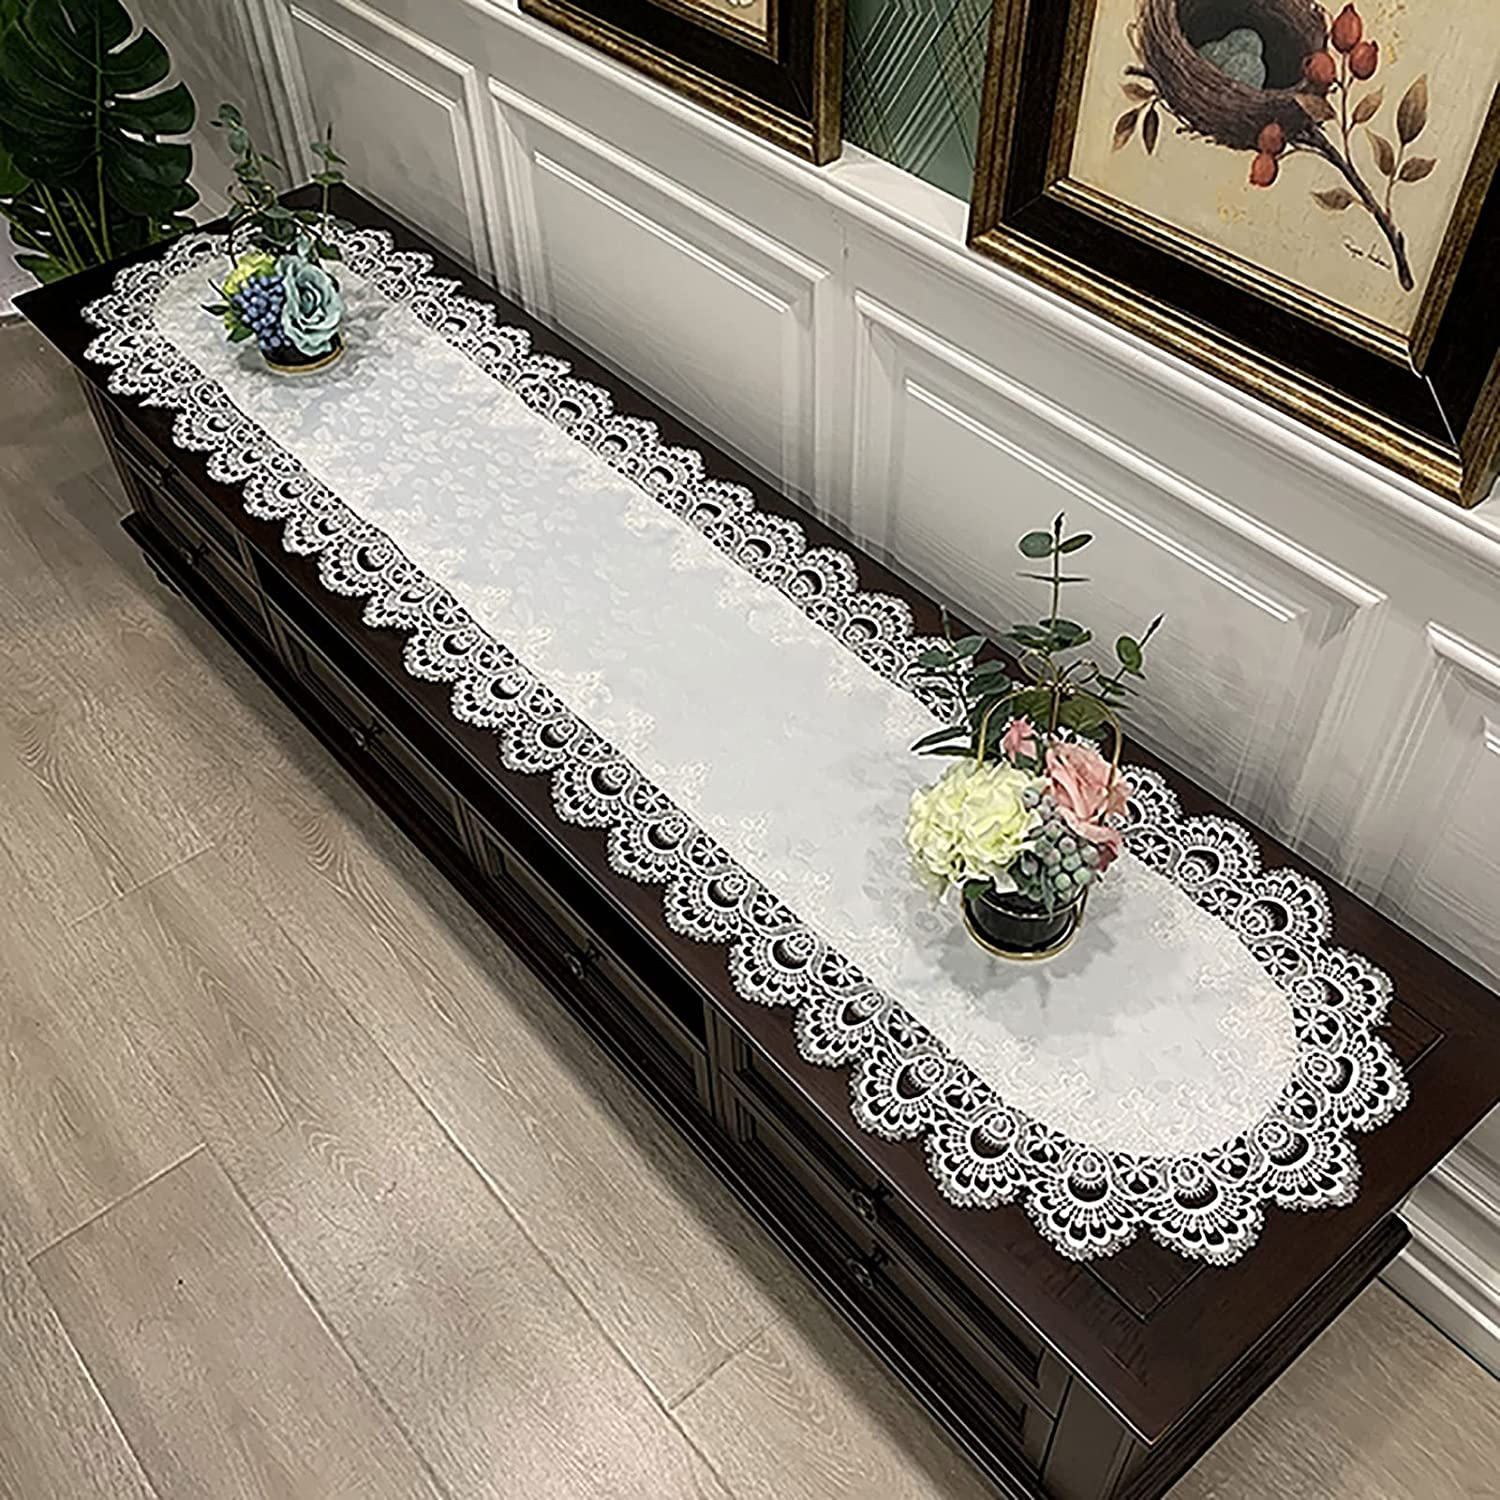 Lace Table Runner Jacquard Dresser Coffee NEW Super popular specialty store for Scarf